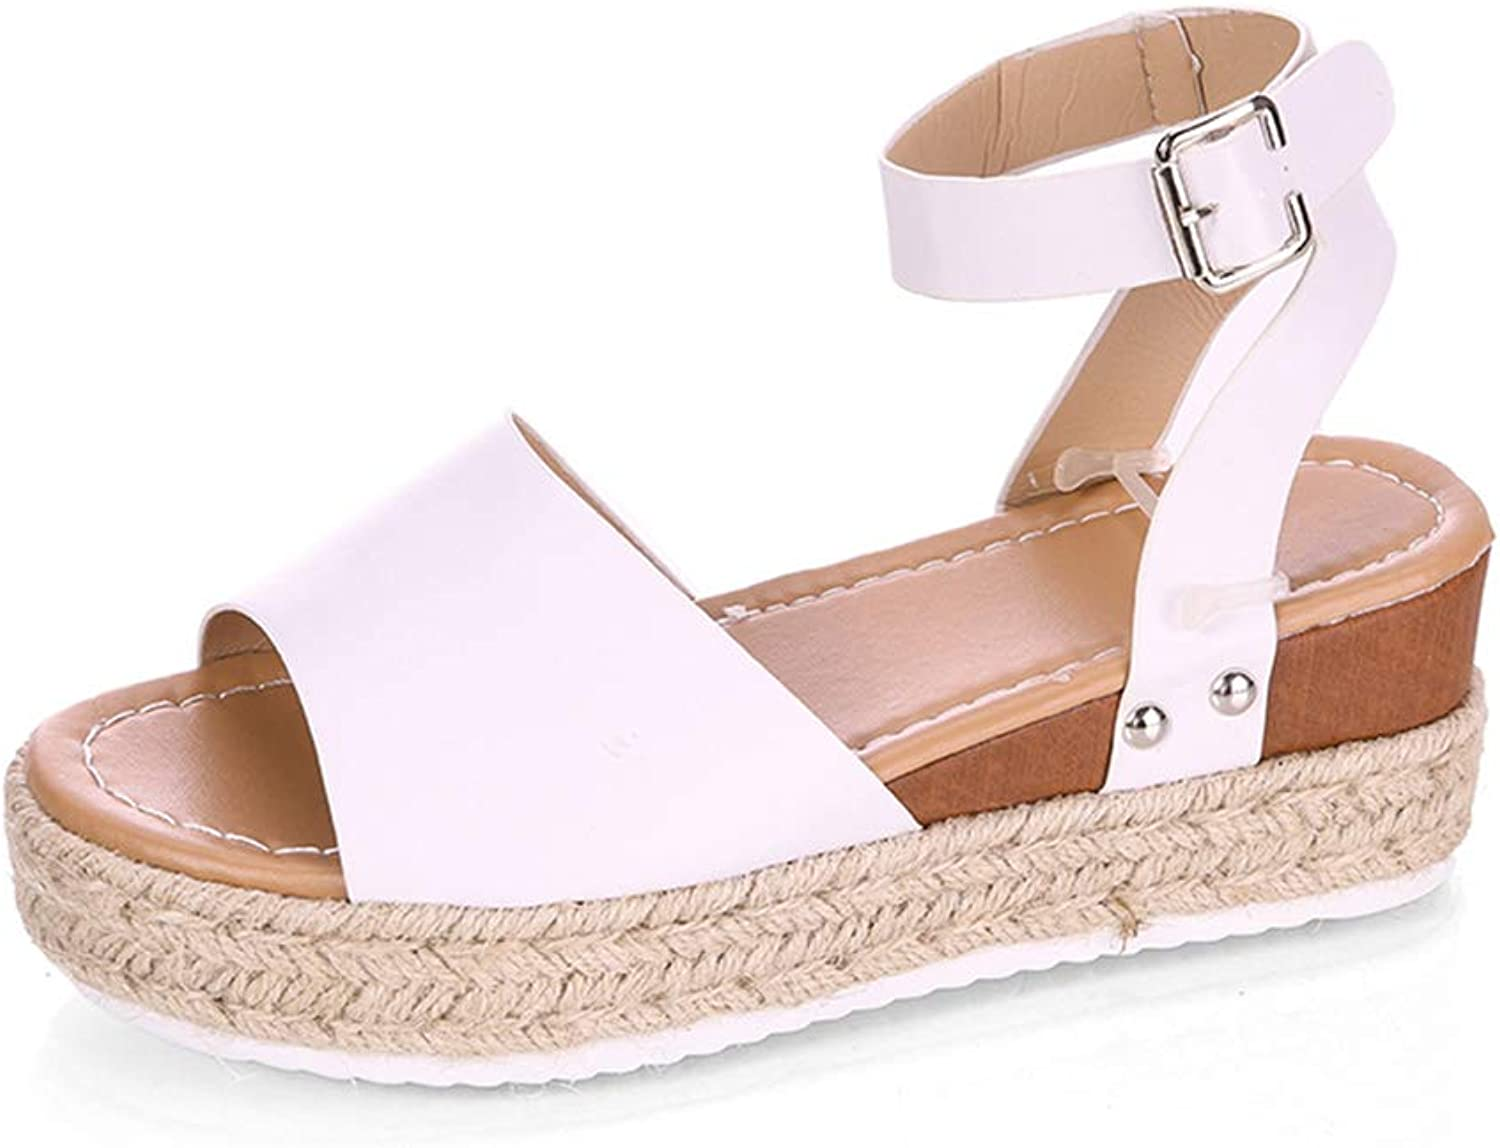 Jessie Womens Casual Espadrilles Flatform Studded Wedge Buckle Ankle Strap Open Toe Sandals